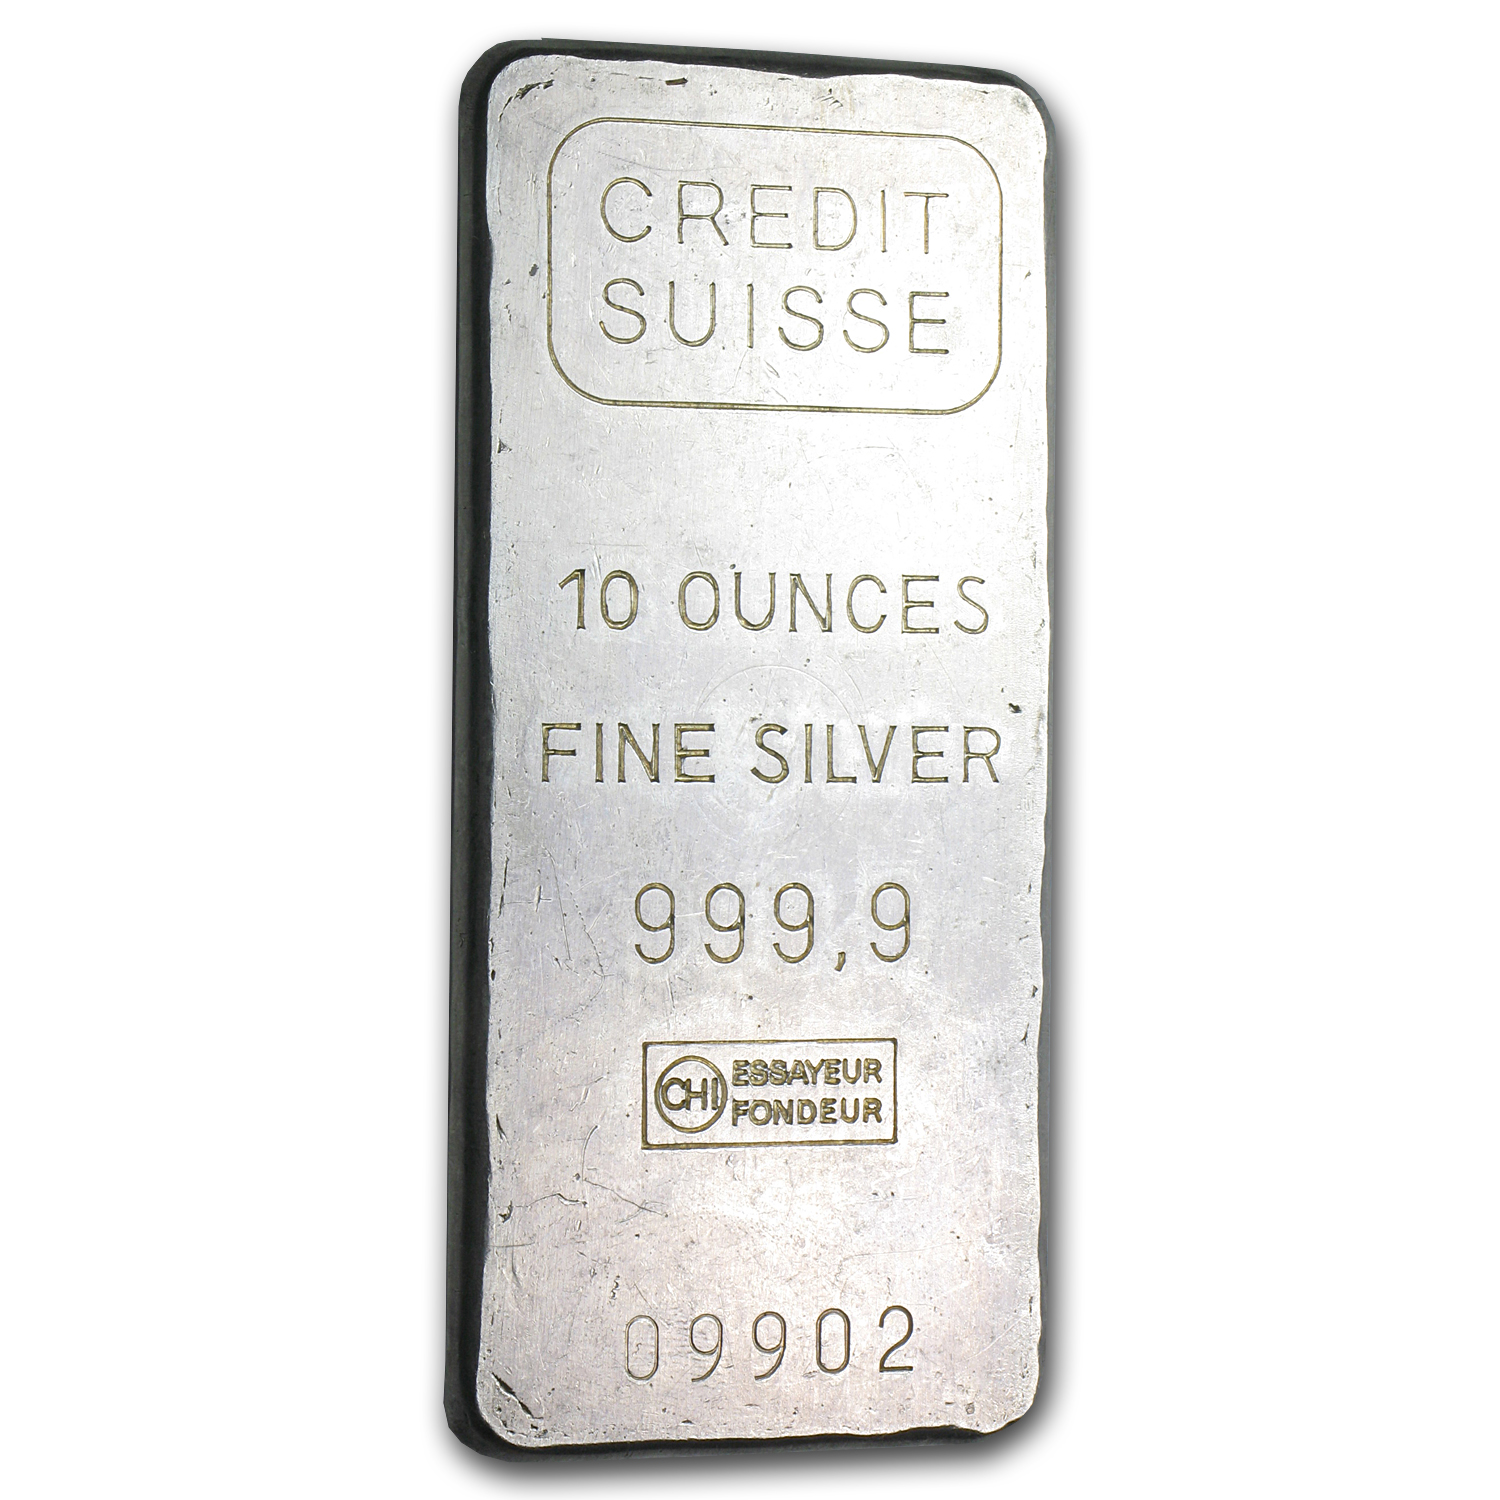 10 oz Credit Suisse Silver Bars (Plain back)